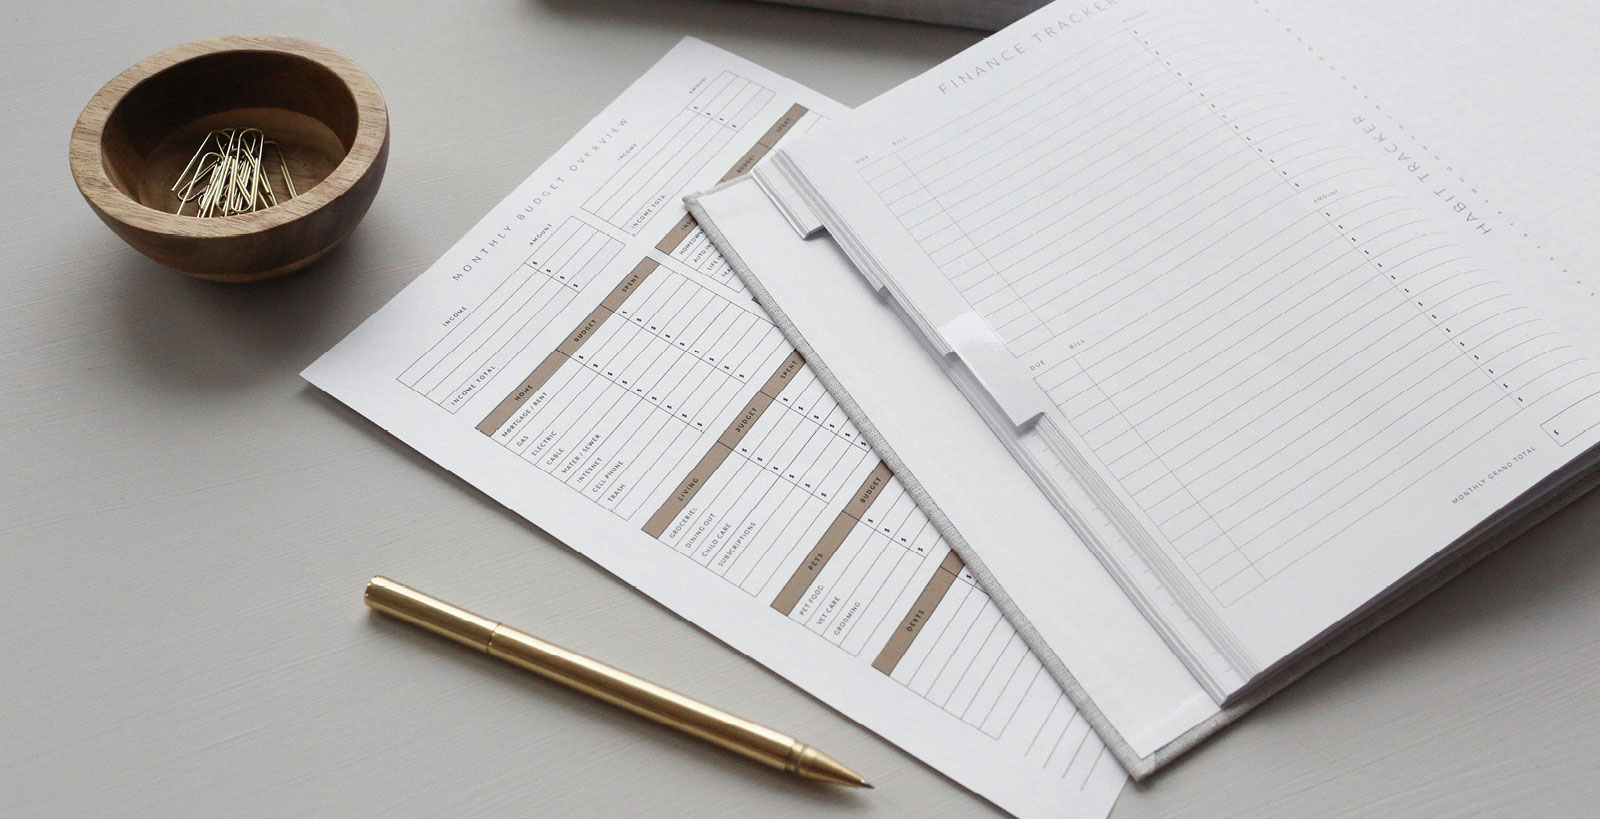 A budget sheet and financial tracking planner lay open on a gray desk beside a rose-gold pen and small wooden bowl of paperclips.